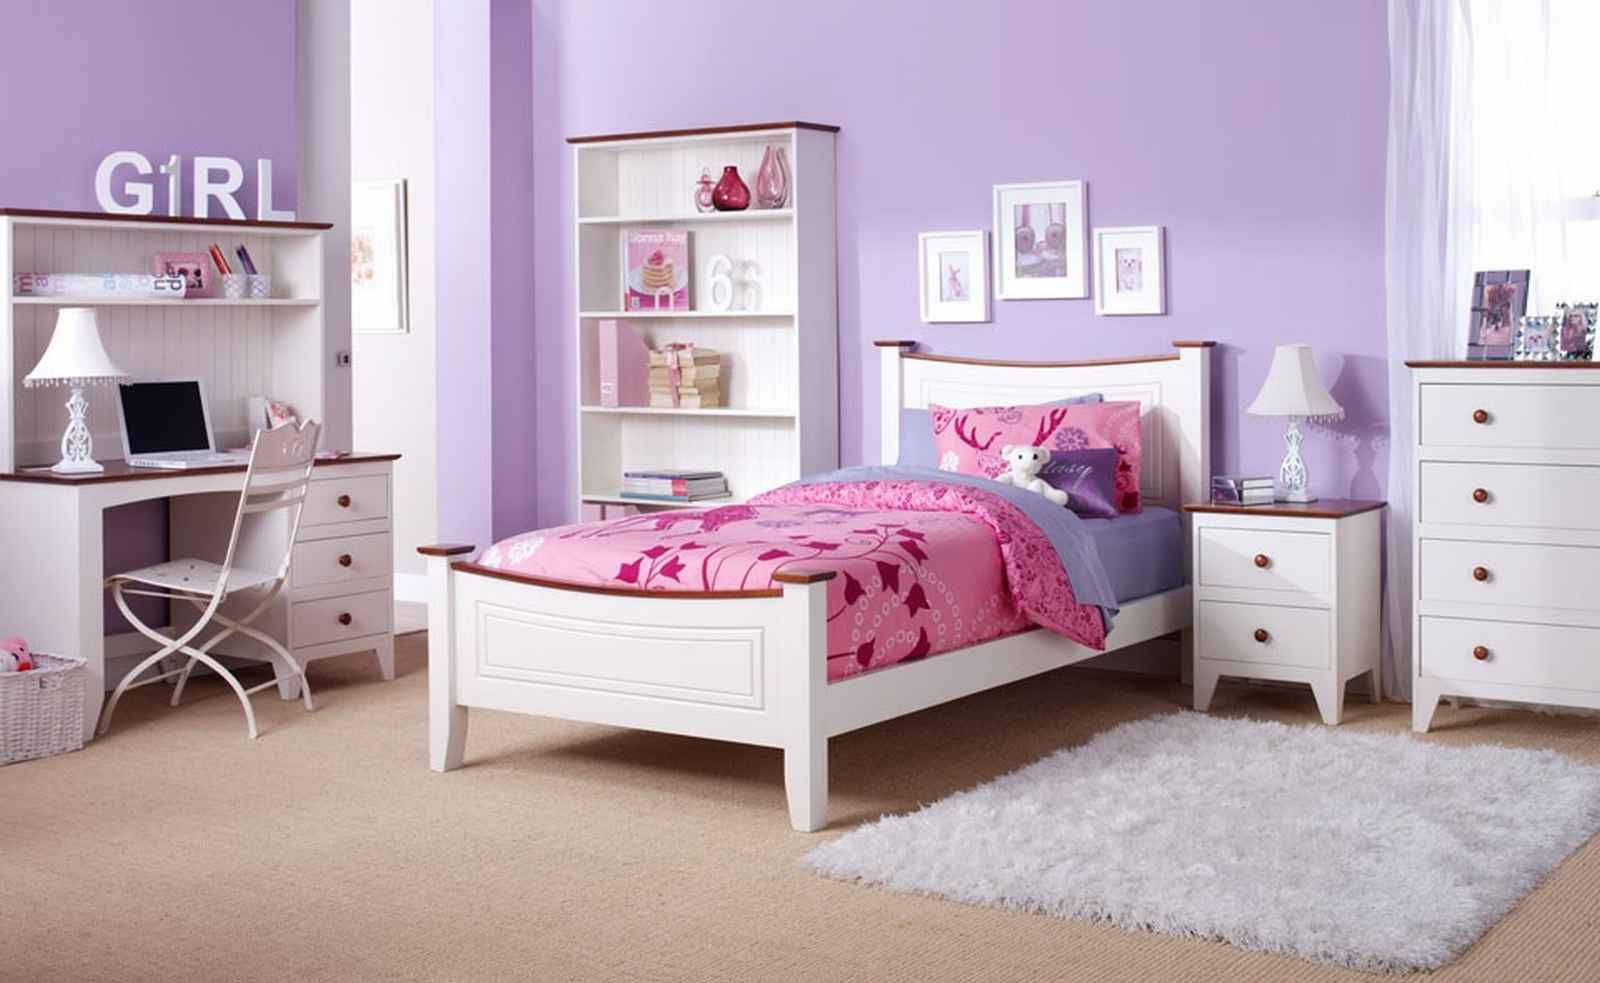 The best bedroom sets for girls Image by: pretty bedroom sets for girls upryajn SVKIPTG